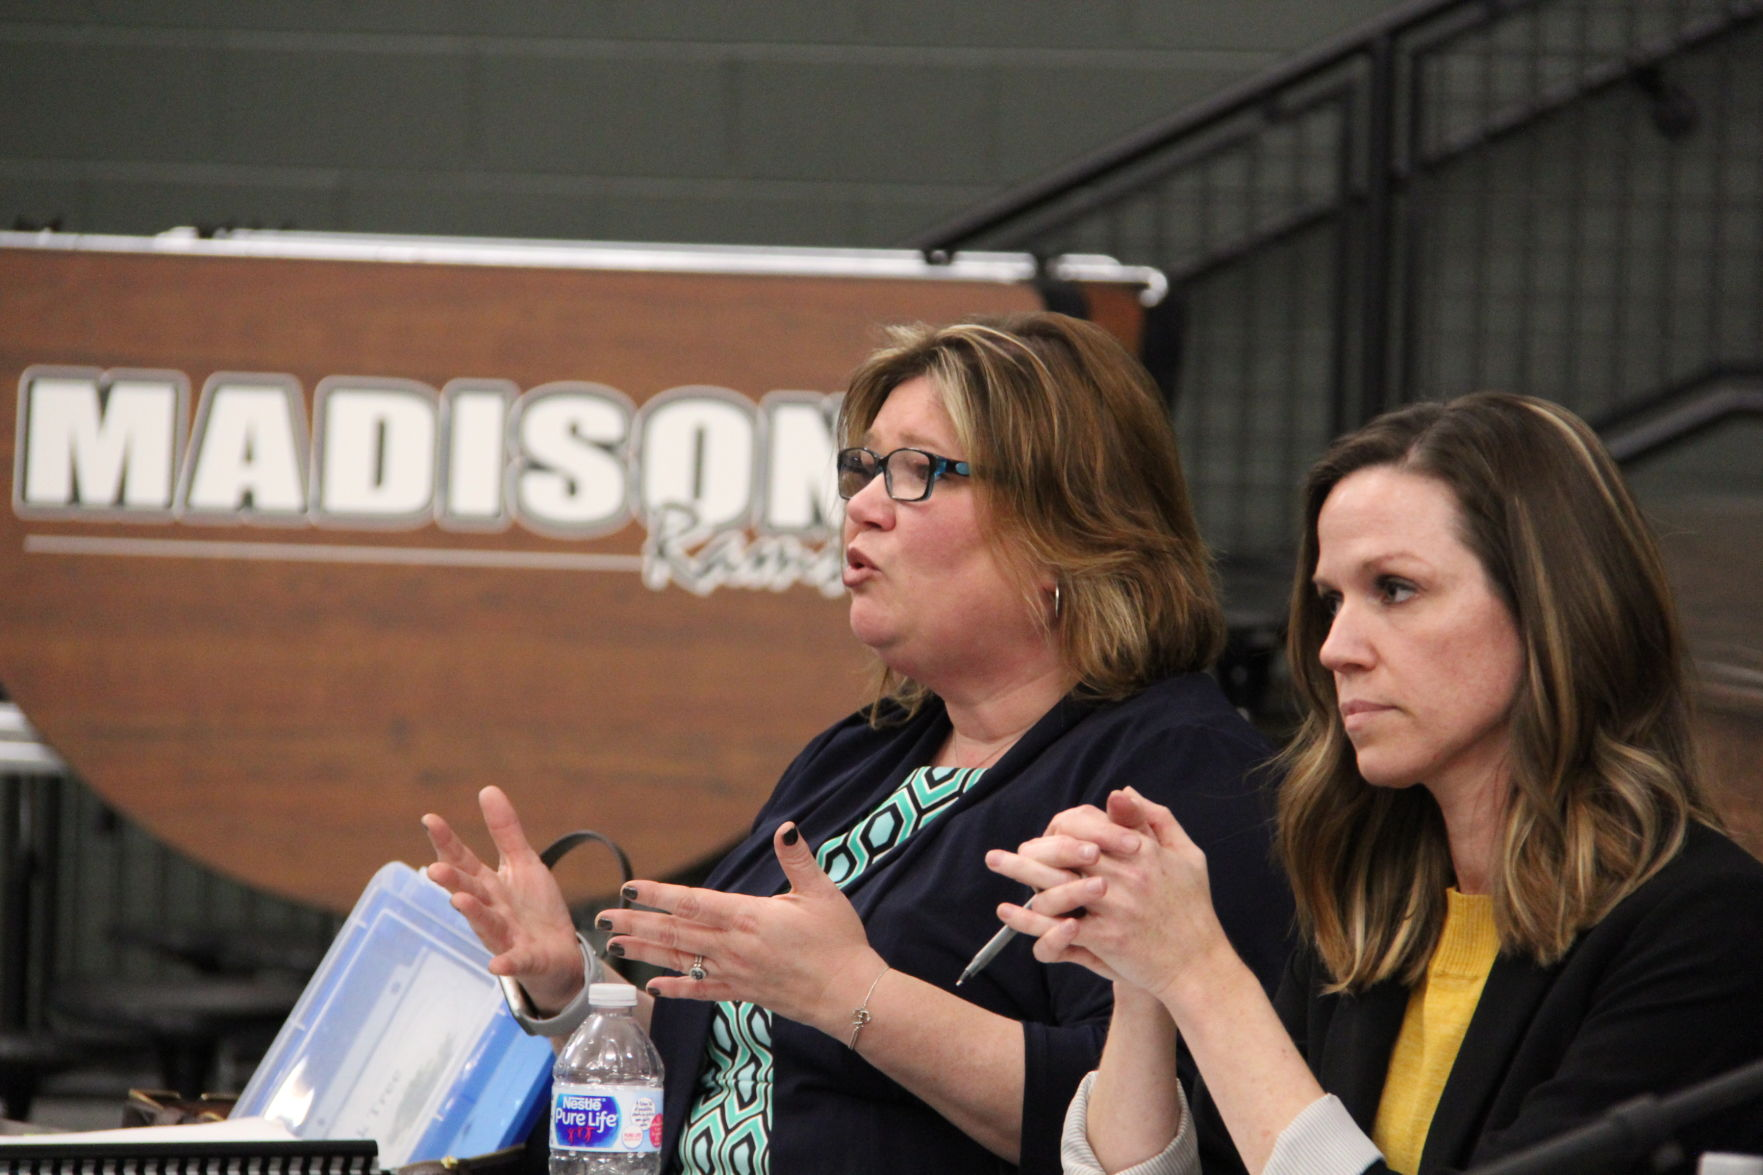 Madison school board may vote Thursday on resignation agreement with Hilderbrand